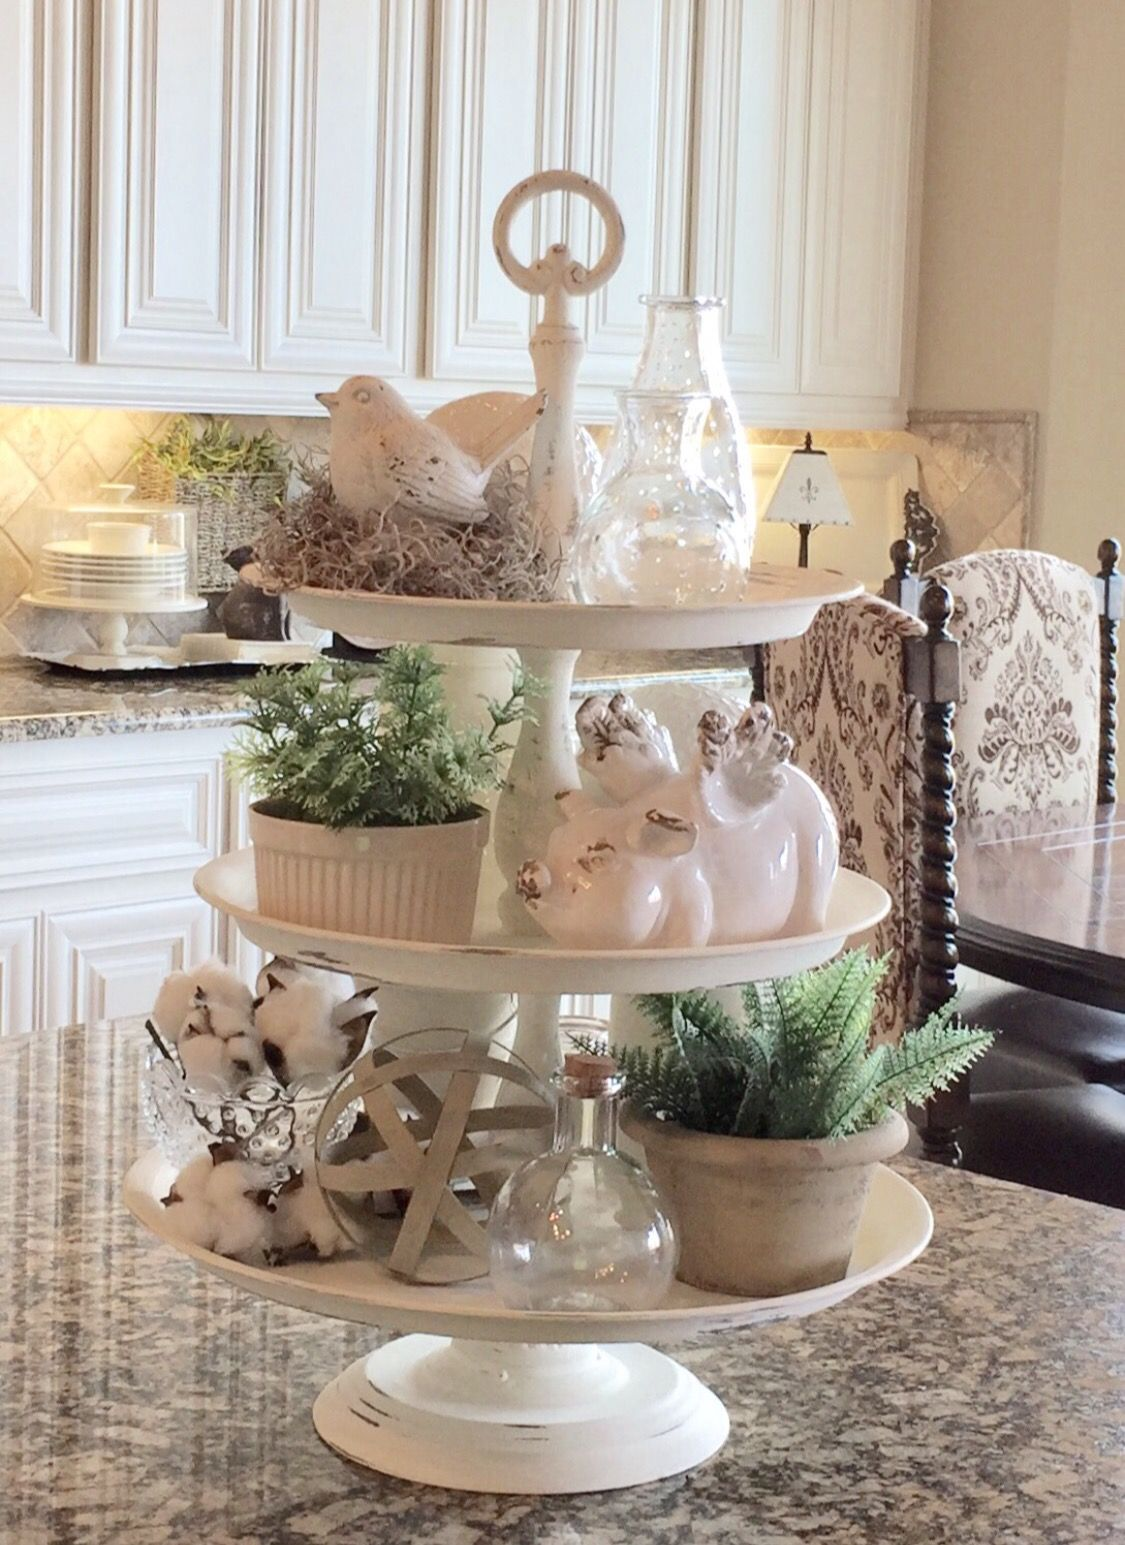 Trays For Decor On Kitchen Counter Ideas: Tiered Trays In 2019